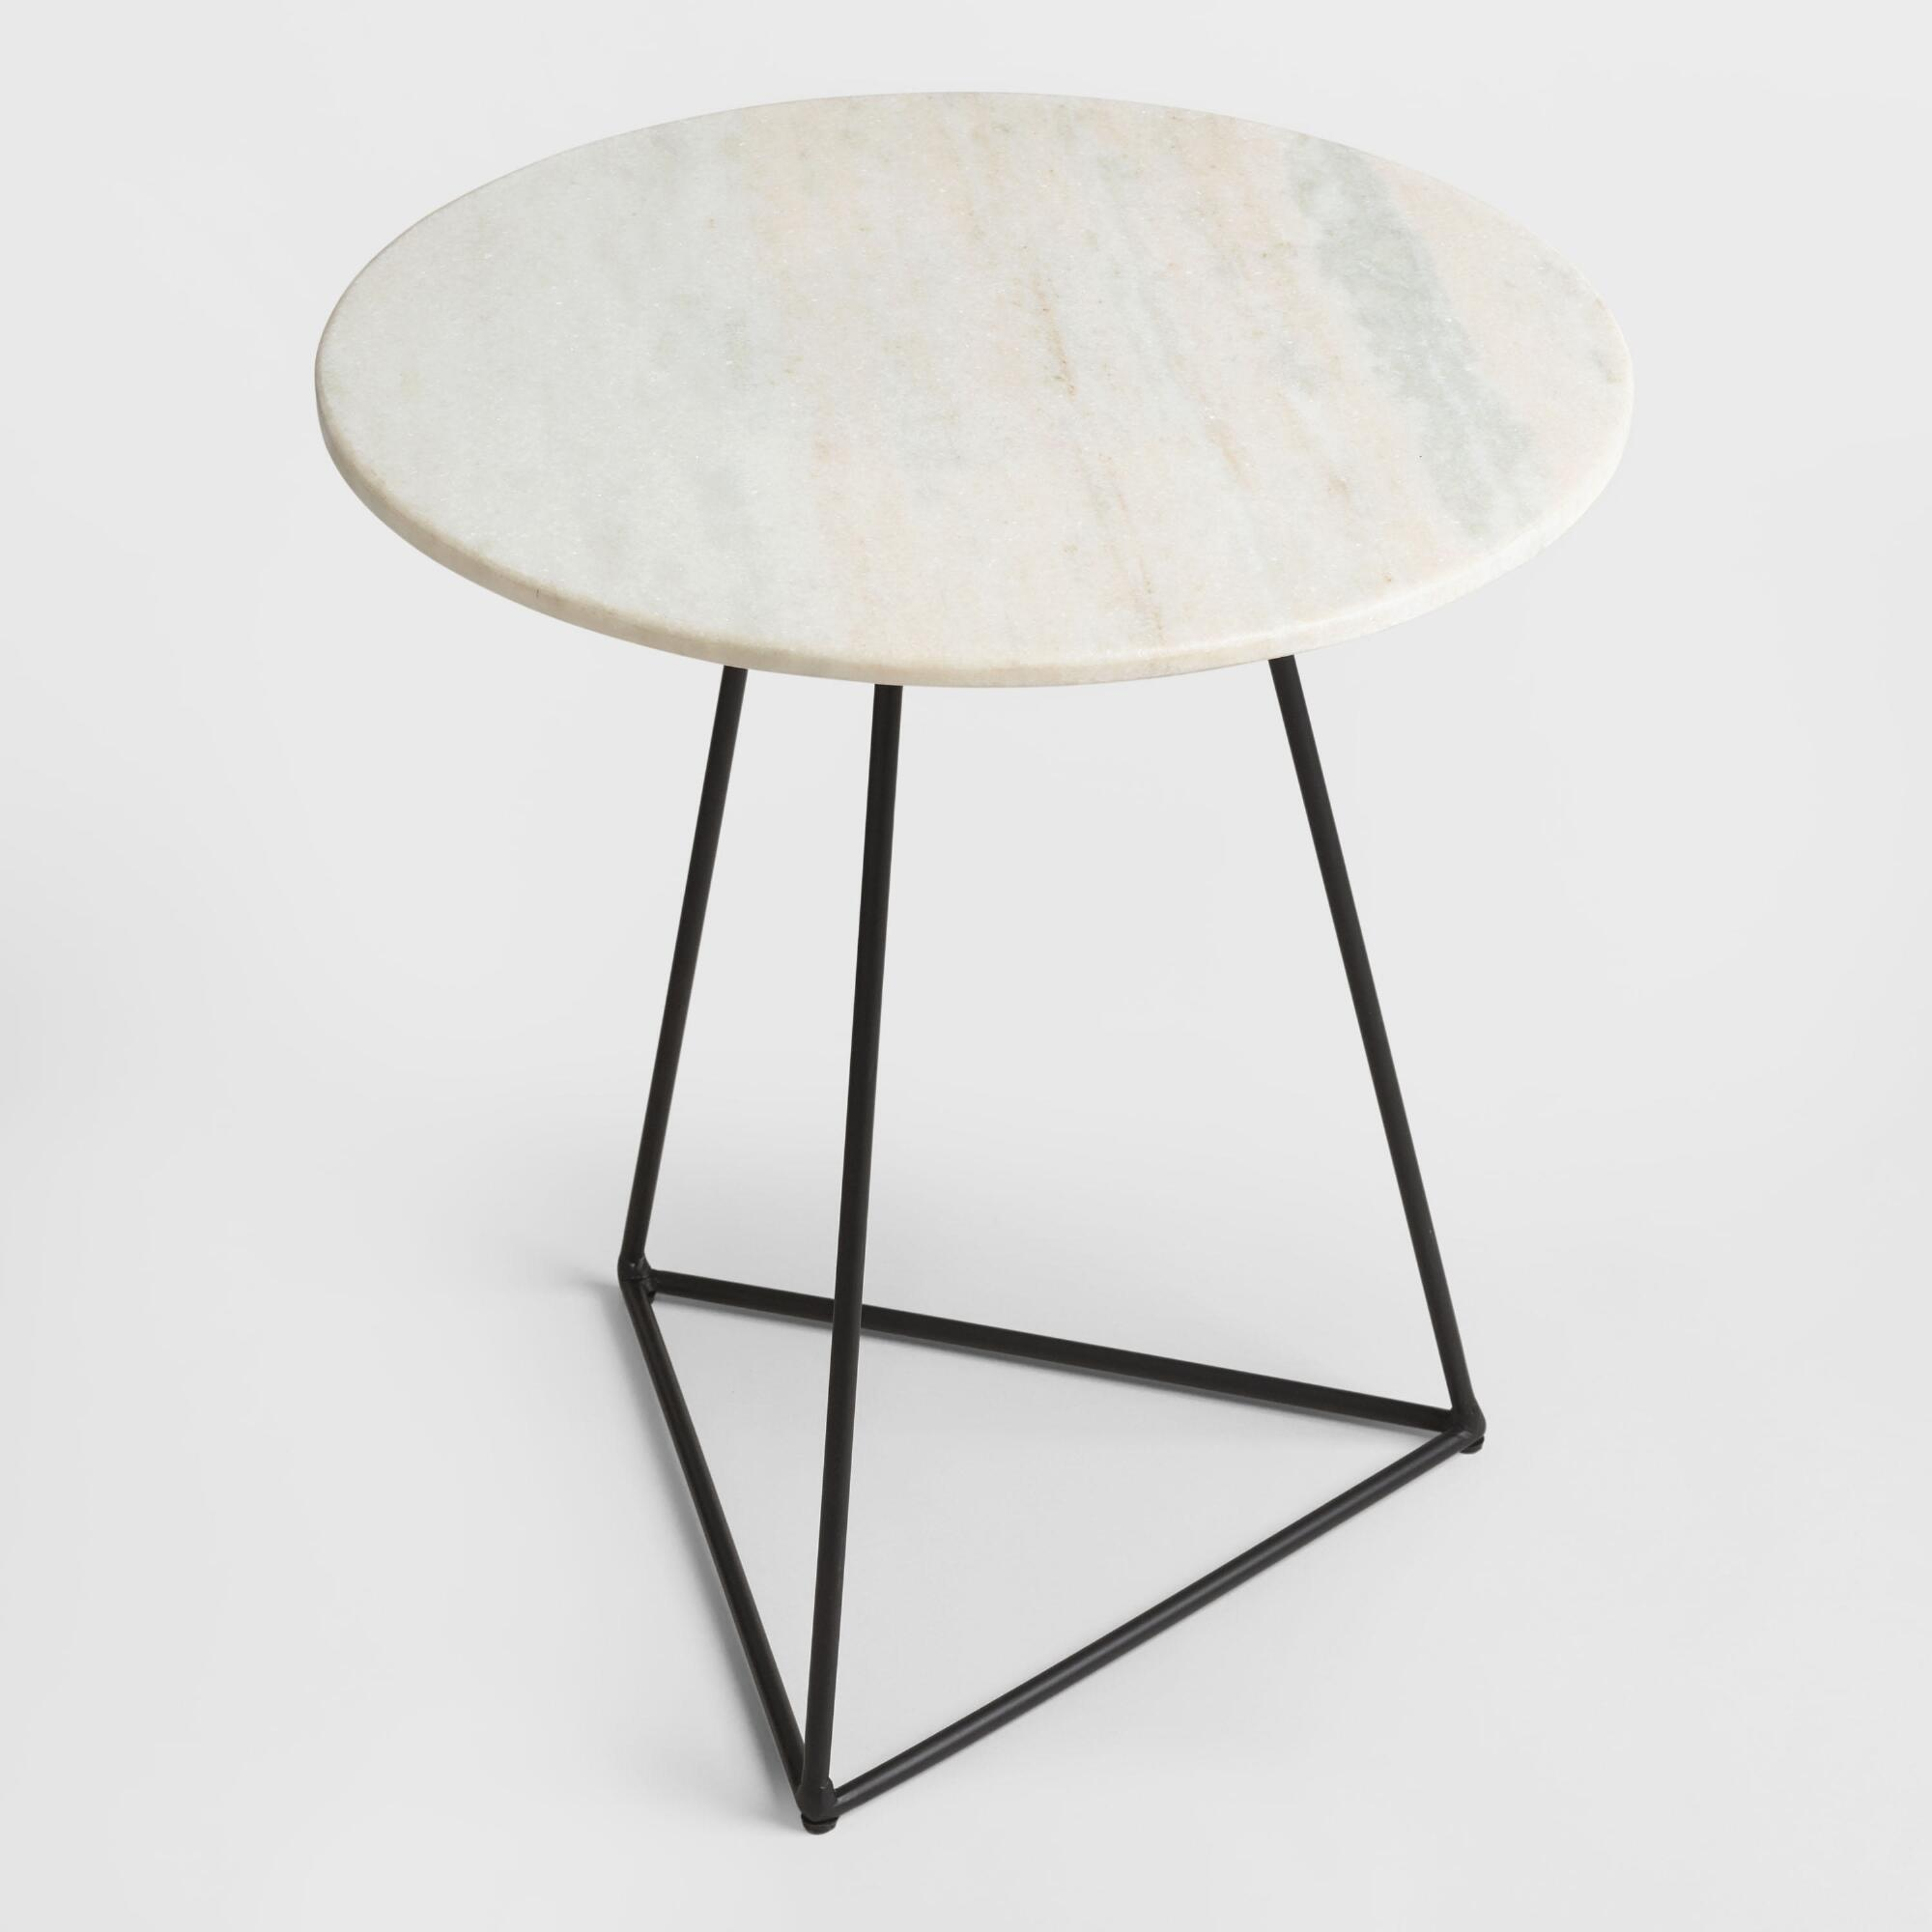 small space coffee side tables world market iipsrv fcgi wood metal accent table round white marble and bedroom furniture night stands neptune dining comfortable outdoor chairs